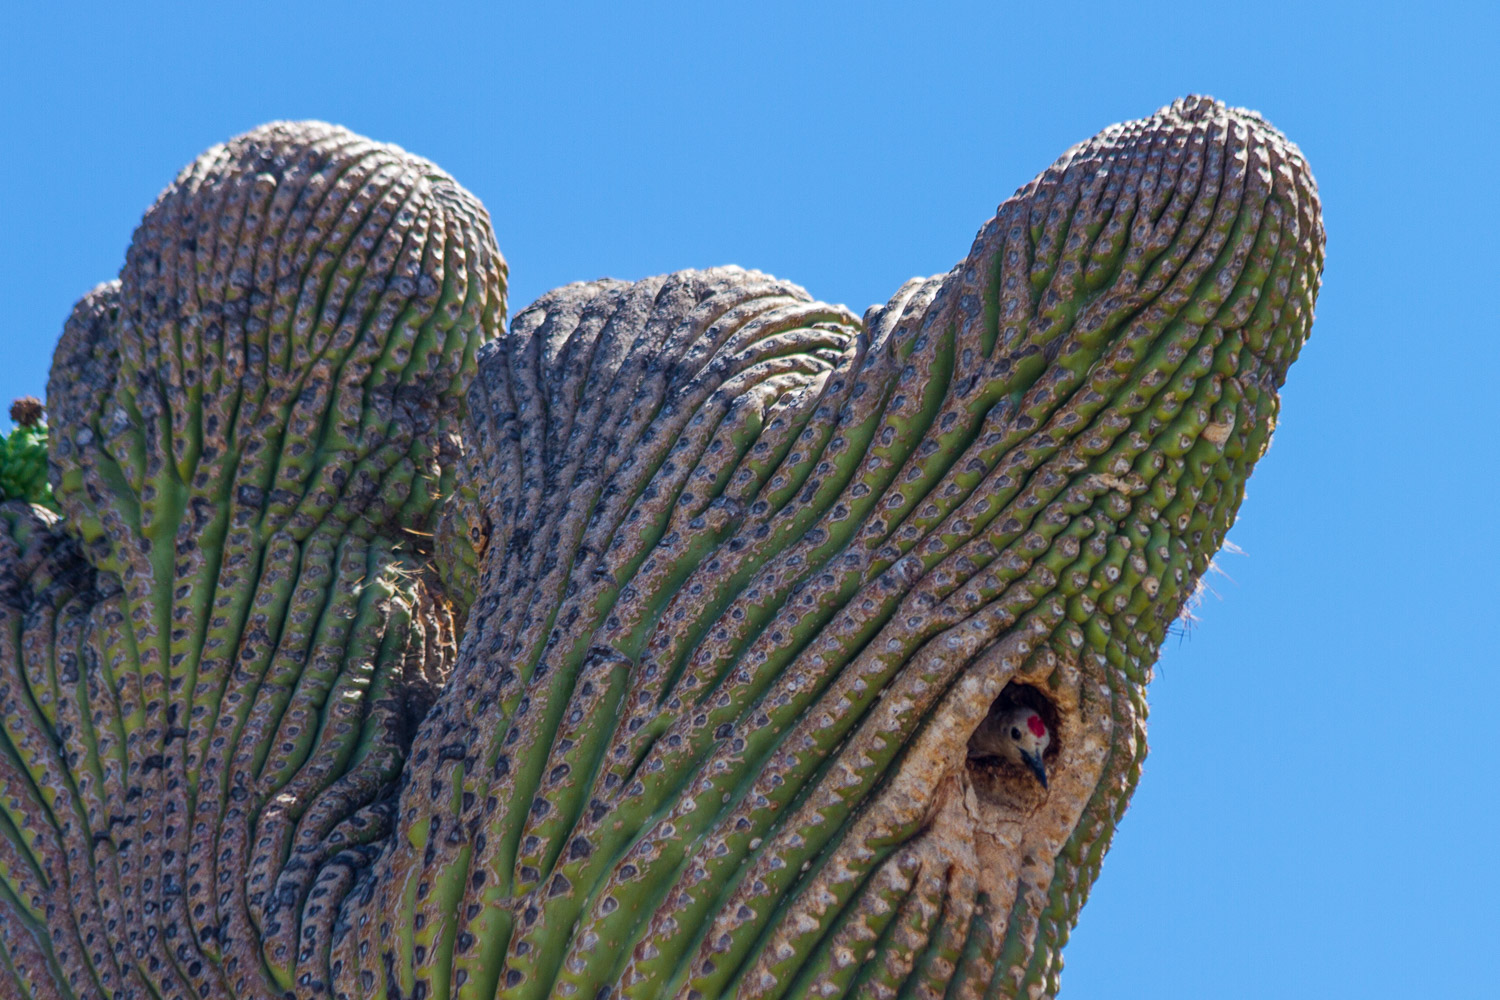 Gila Woodpecker nesting in a Crested Saguaro Cactus